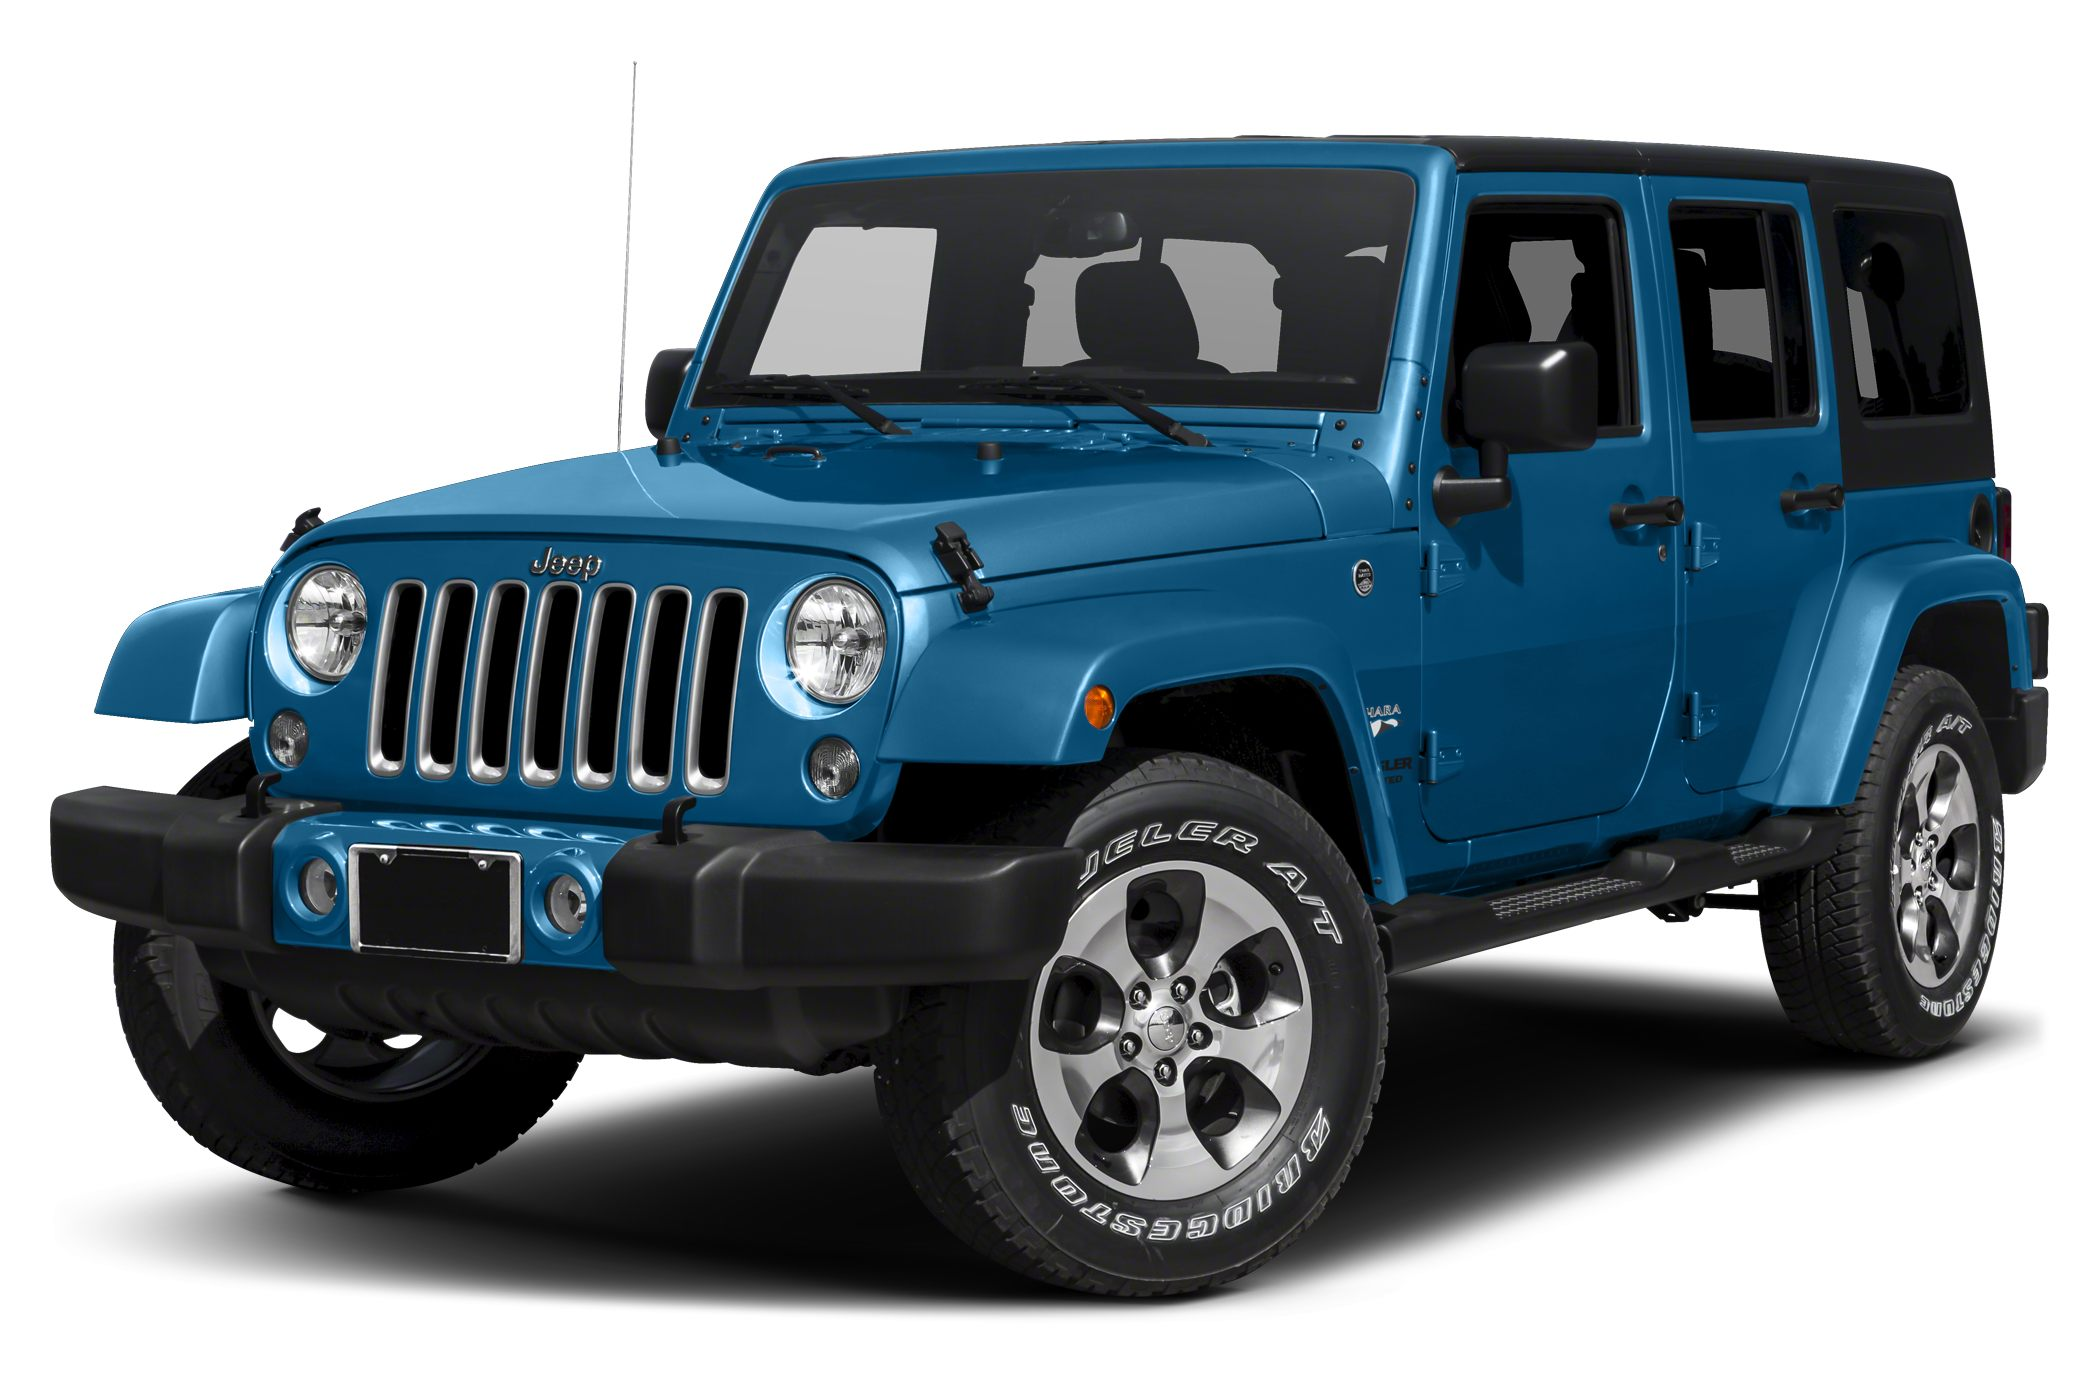 2014 jeep wrangler unlimited sahara 4dr 4x4 information